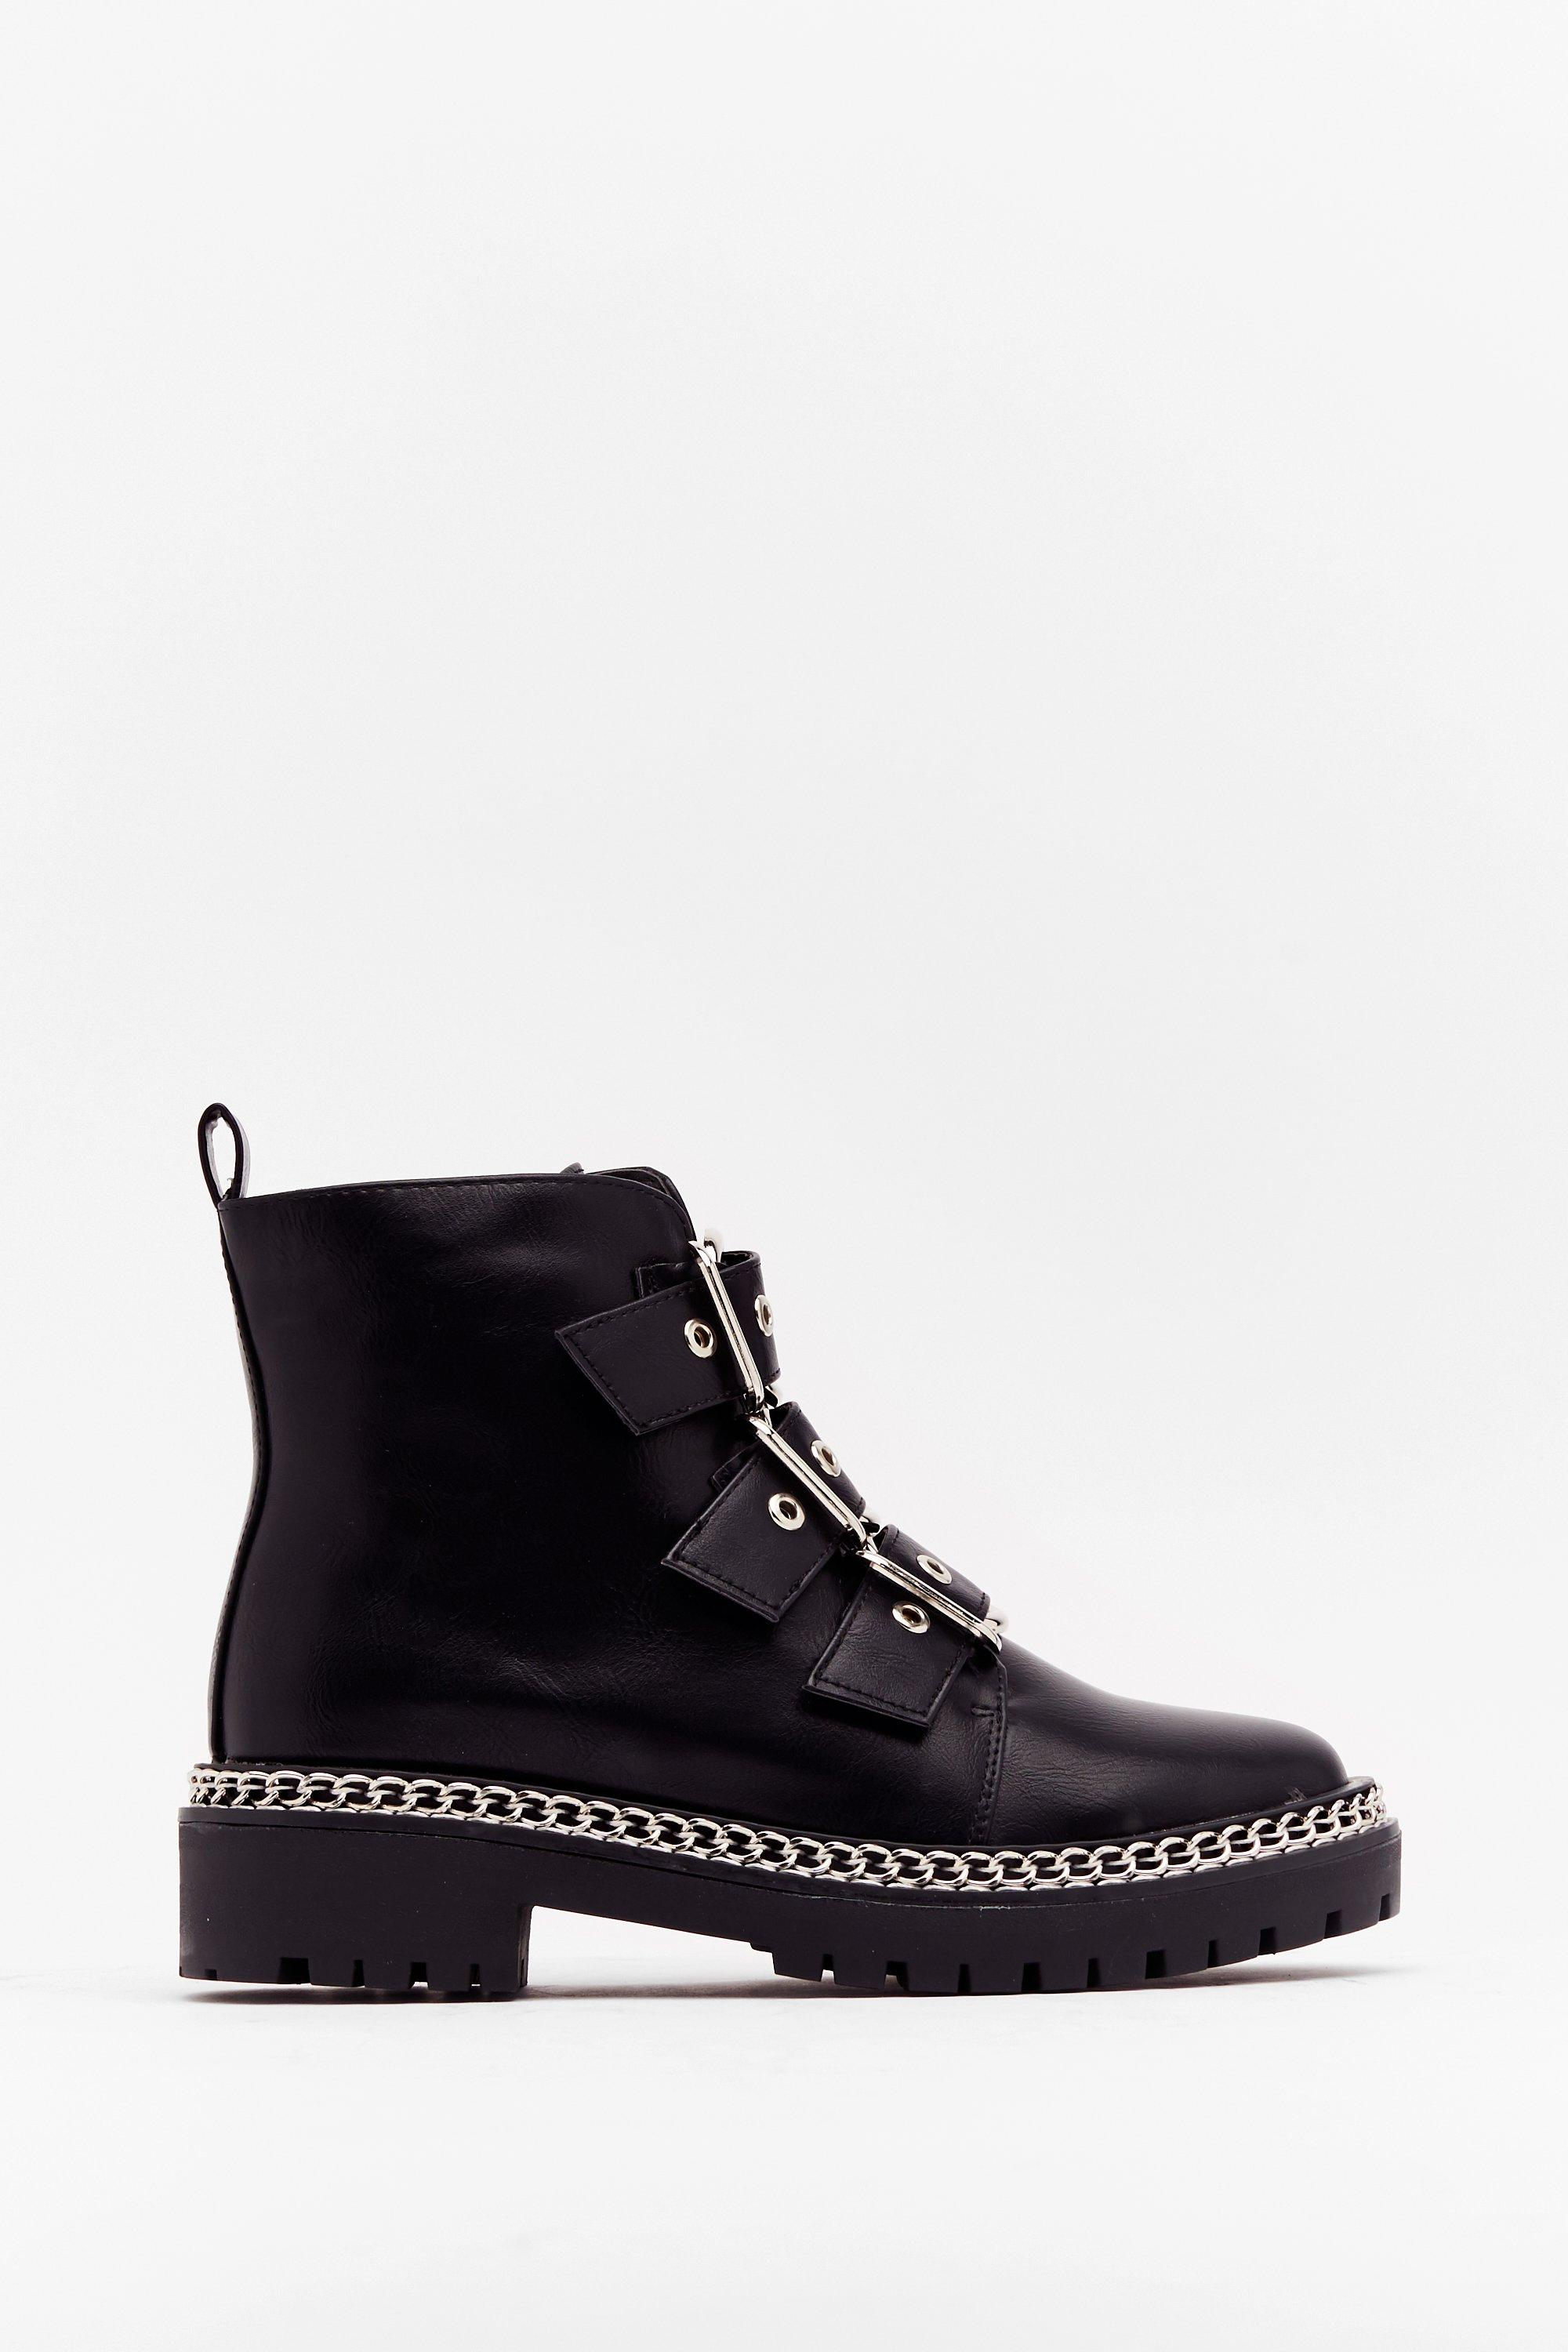 Image of Womens Walk That Way Faux Leather Buckle Boots - Black